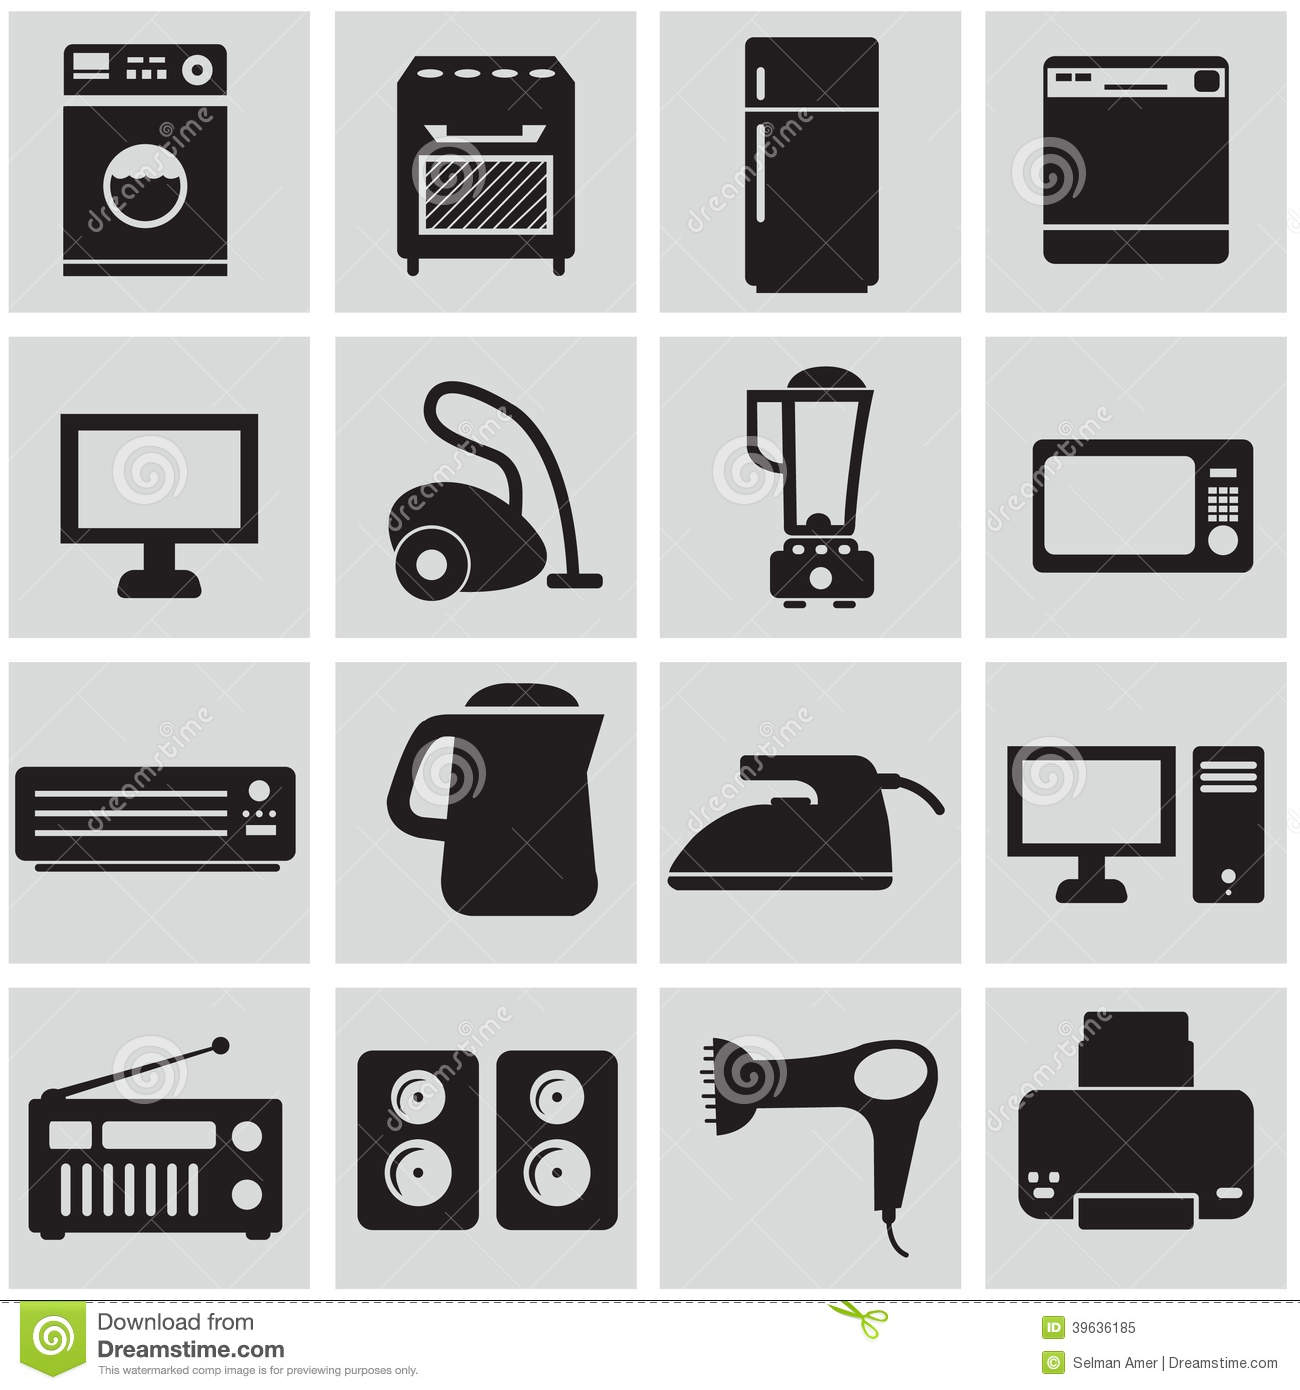 Set Of Electronic Home Devices Stock Vector - Illustration of play, illustration: 39636185